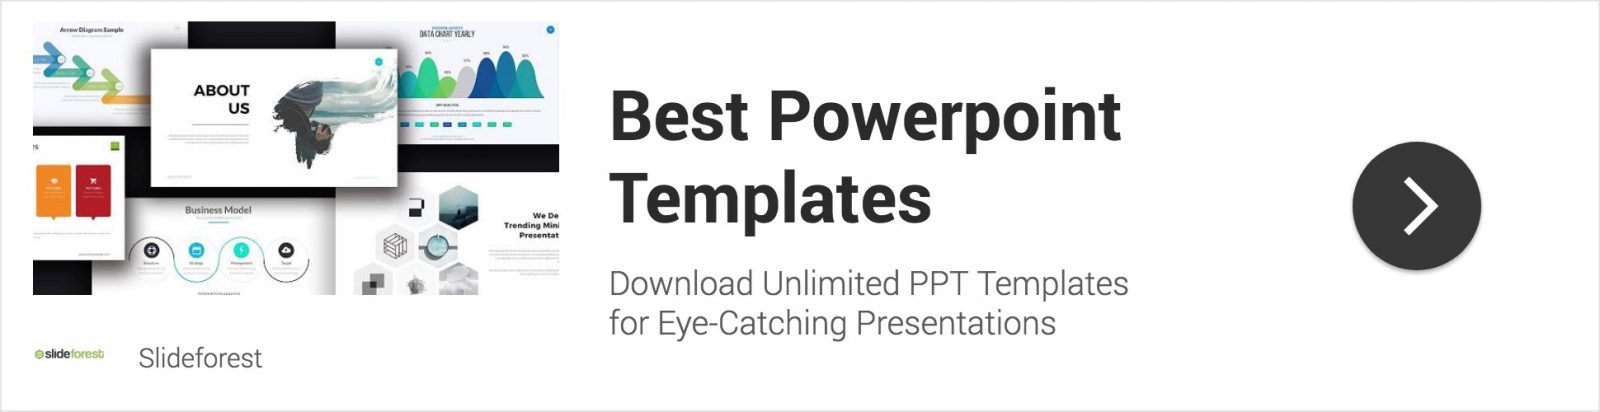 25 minimal powerpoint templates for aesthetic presentations minimal powerpoint templates toneelgroepblik Images